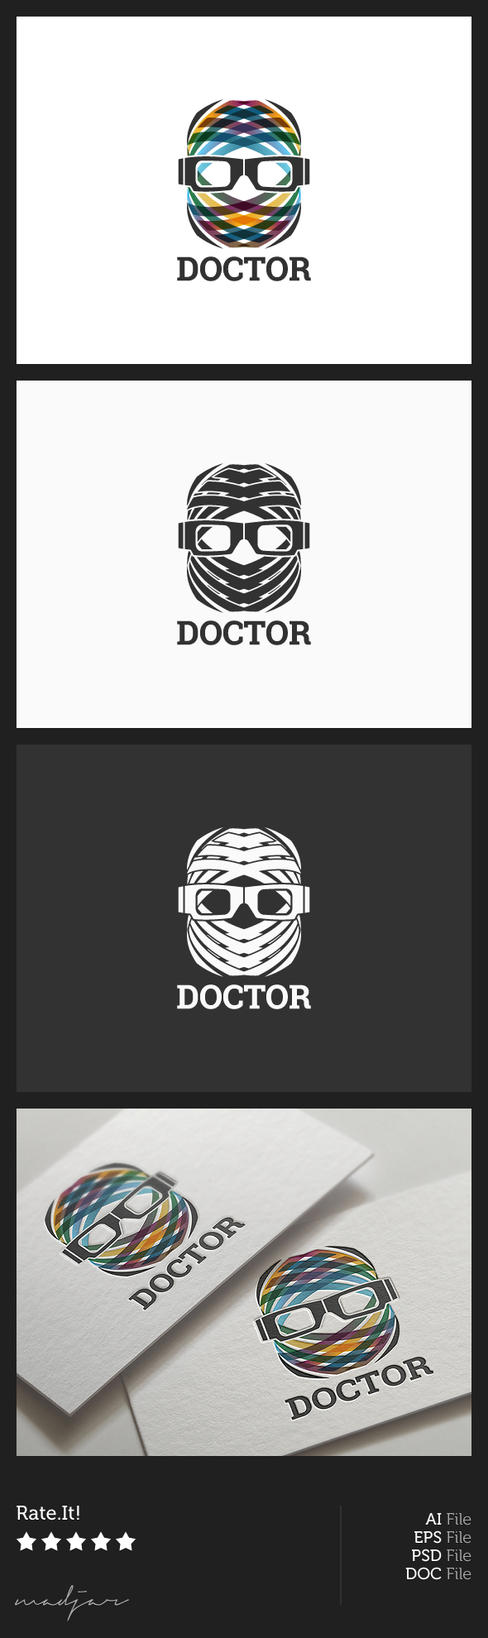 Doctor Logo by madjarov